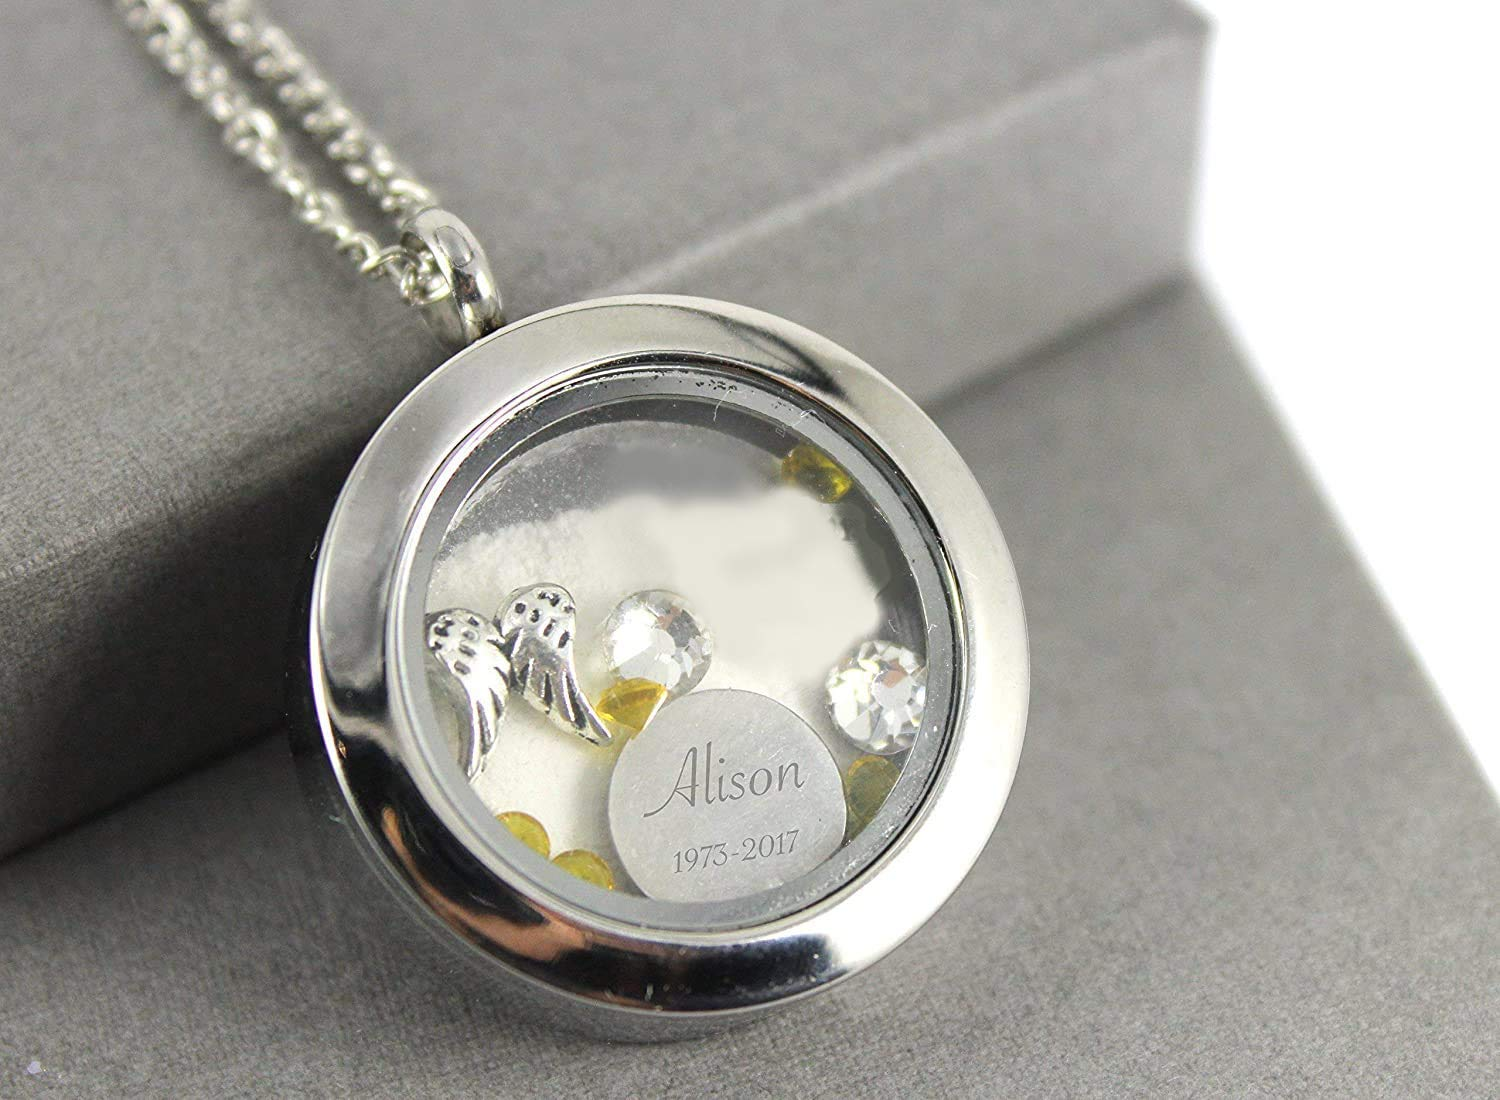 ashes jewellery ashes pendant ashes in glass jewellery Ashes necklace memorial jewellery cremation jewellery